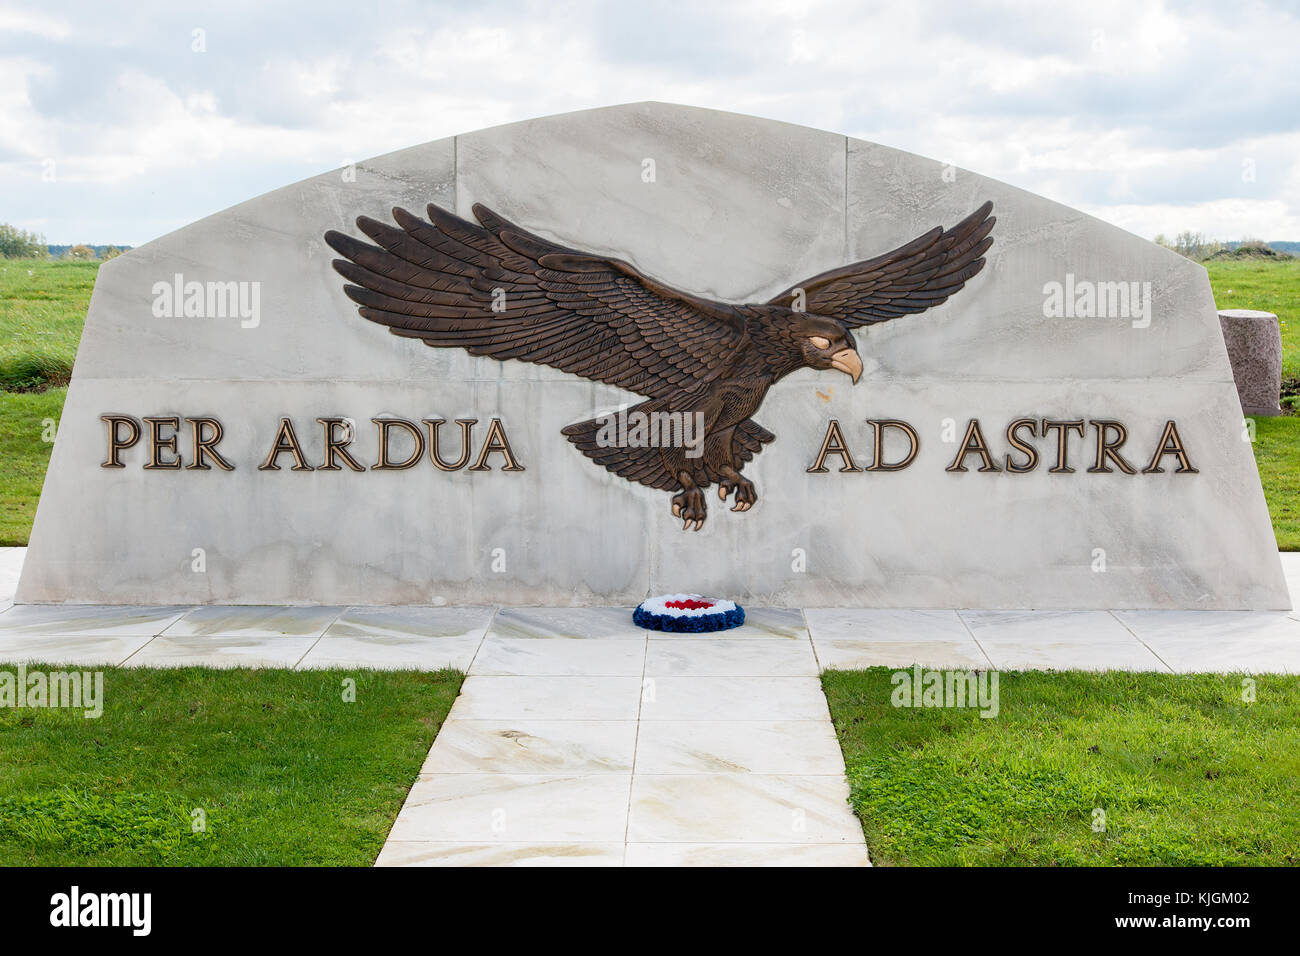 Memorial at St Omer airfield, Headquarters of the British Royal Flying Corps in World War I - Stock Image